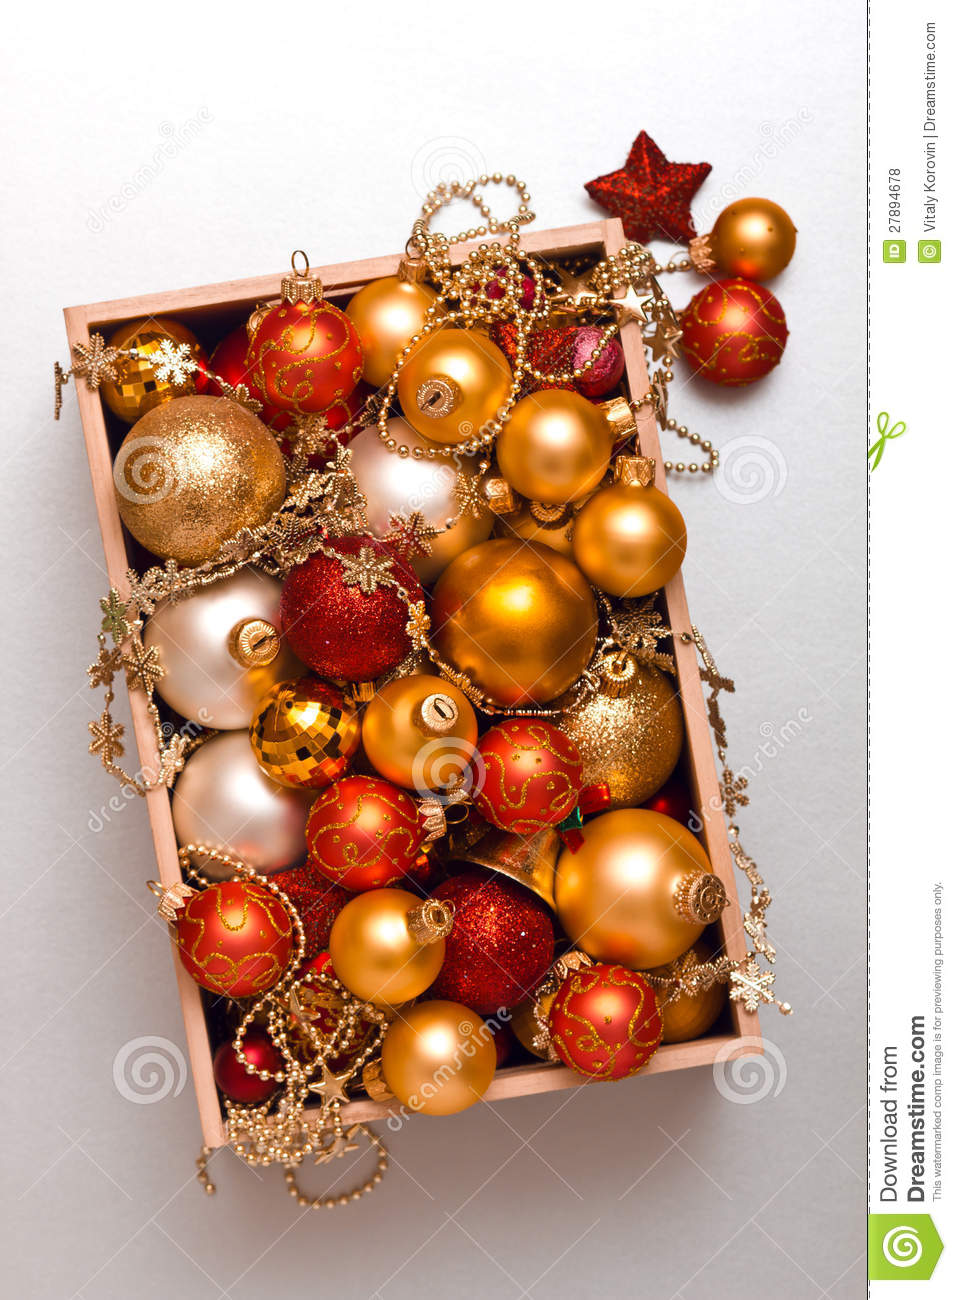 box of christmas decorations - Orange Christmas Decorations